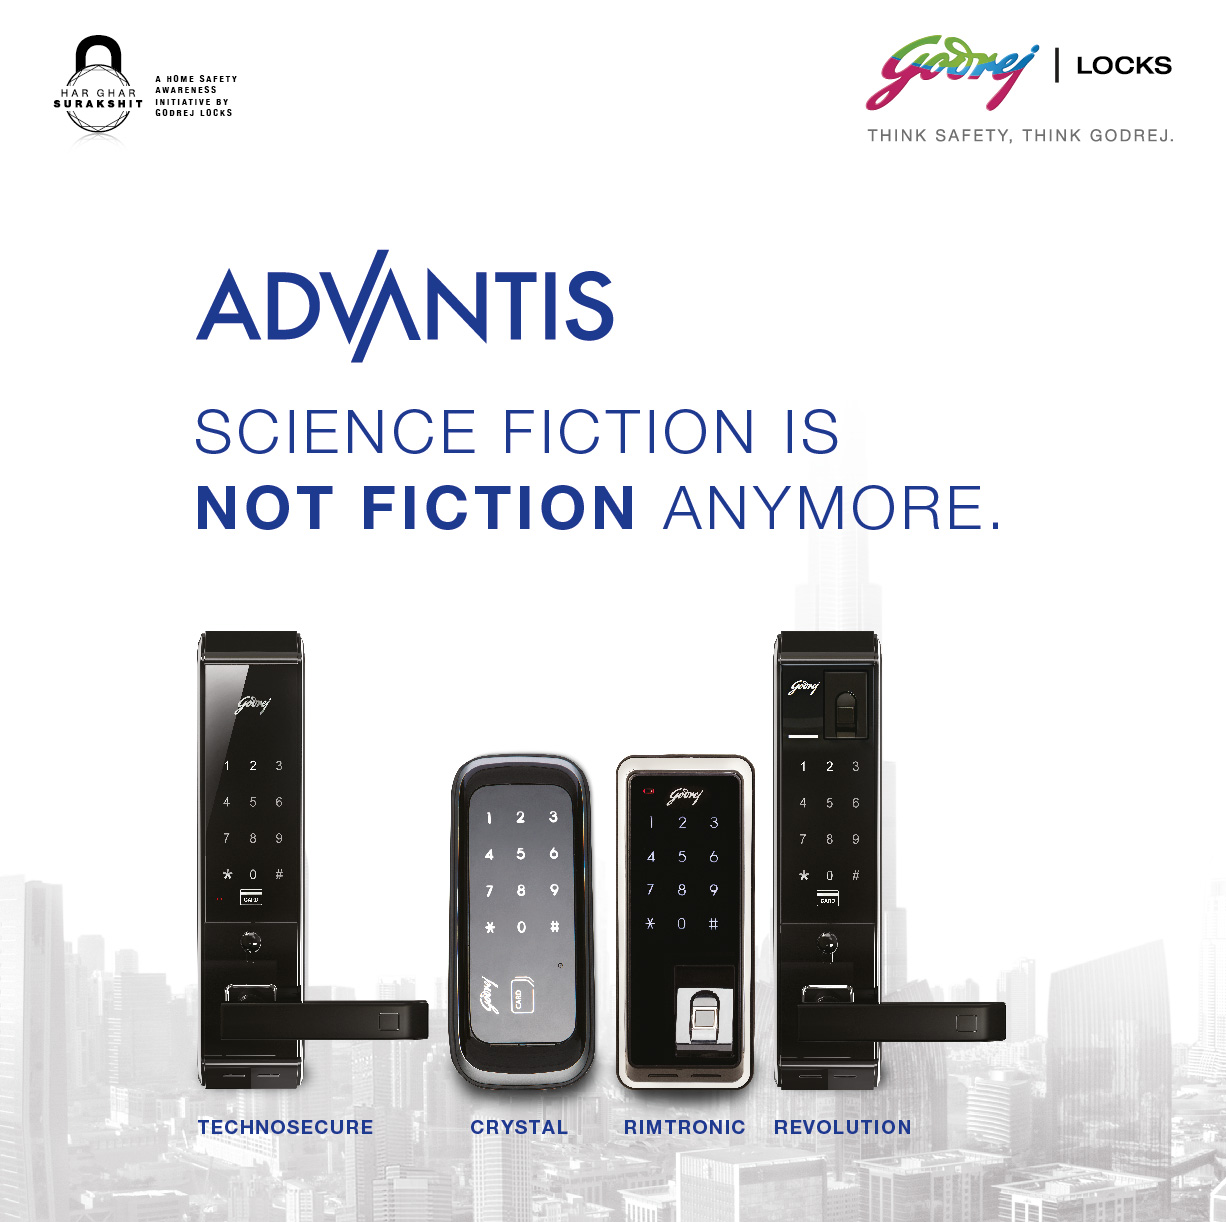 Godrej Locks unveils the most advanced digital locks range - Advantis